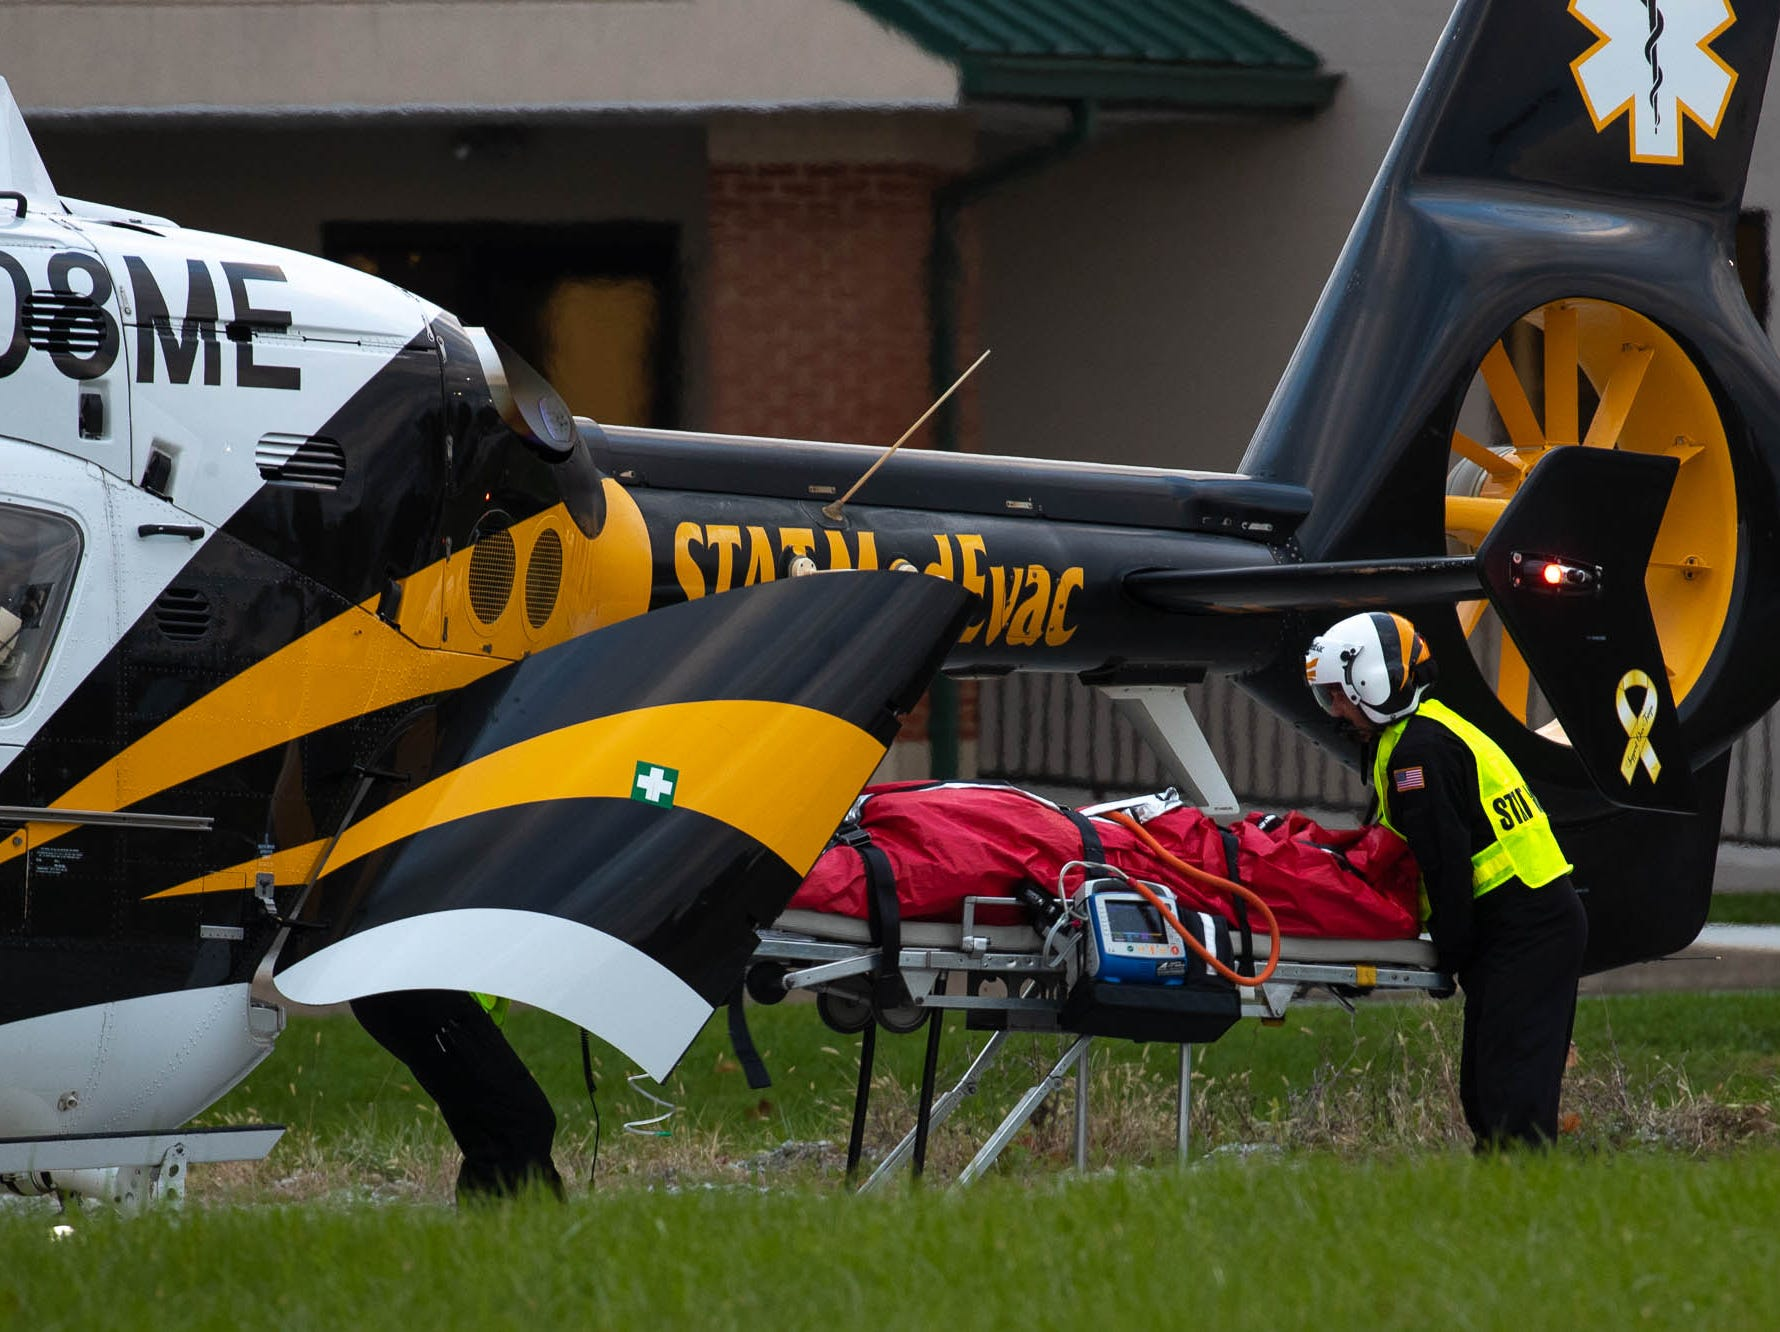 Medical personnel transport a 69-year-old man to a medical helicopter on the 500 block of West King St. after a domestic-related stabbing on the 300 block of Lexington Way, Monday, Oct. 29, 2018, in Littlestown. Littlestown Police Chief Charles Keller said that a 70-year-old woman stabbed a 69-year-old man, and the man was flown to York Hospital.